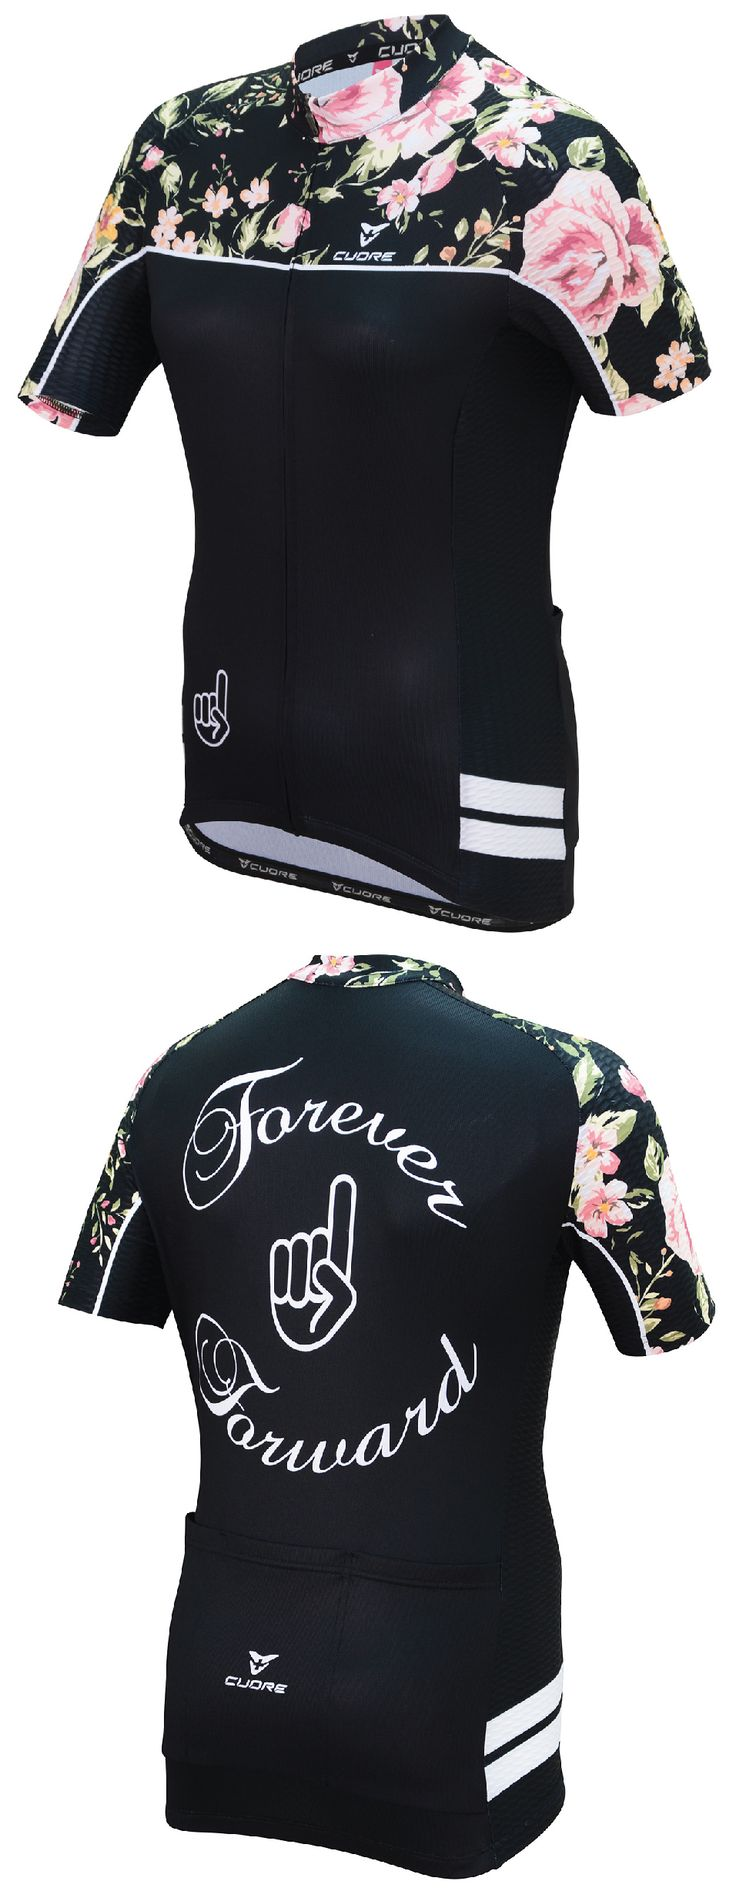 Freedom isn t free cycling jersey - Forever Forward